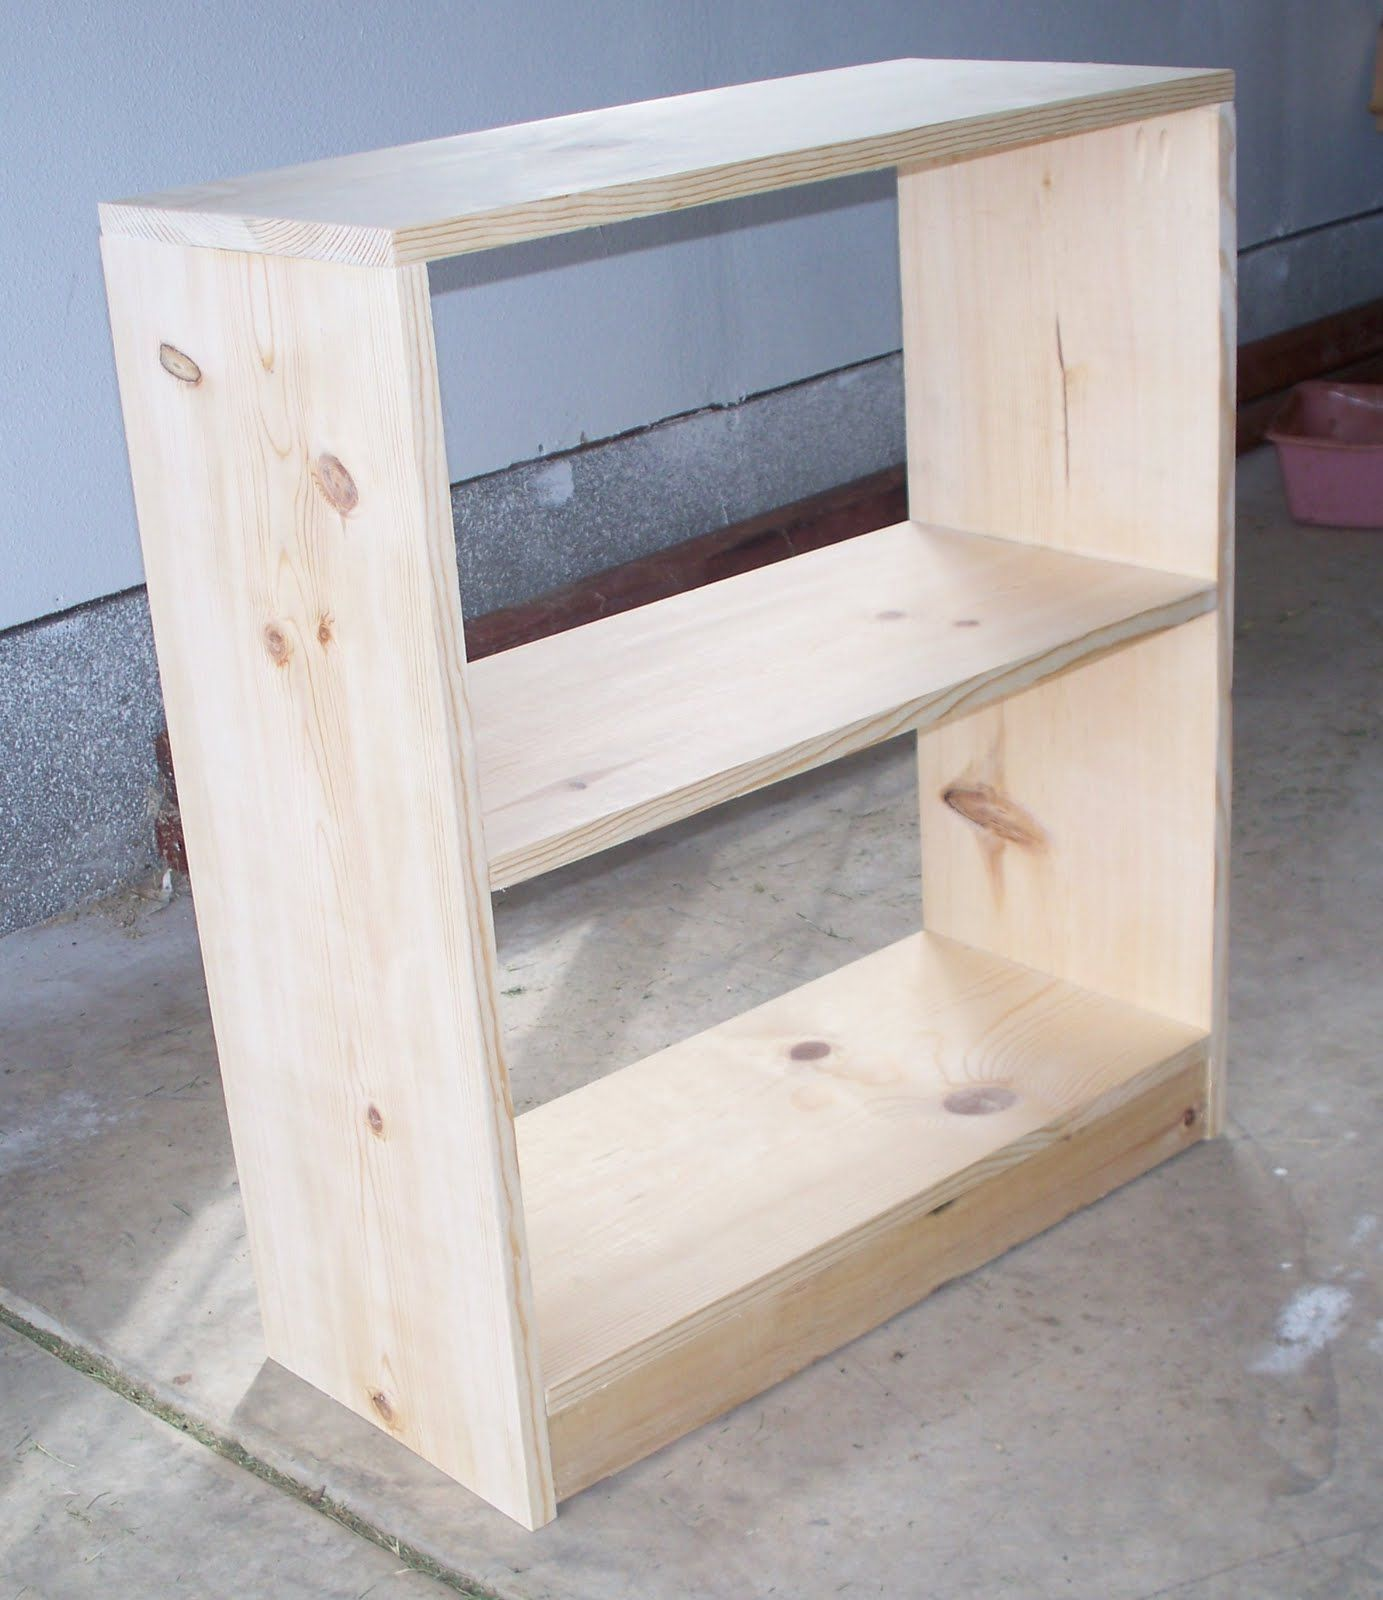 How To Build Small Bookshelf Plans Pdf Woodworking Plans Small Bookshelf Plans The Books Rest On A Sma Bookshelves Diy Simple Woodworking Plans Small Bookshelf